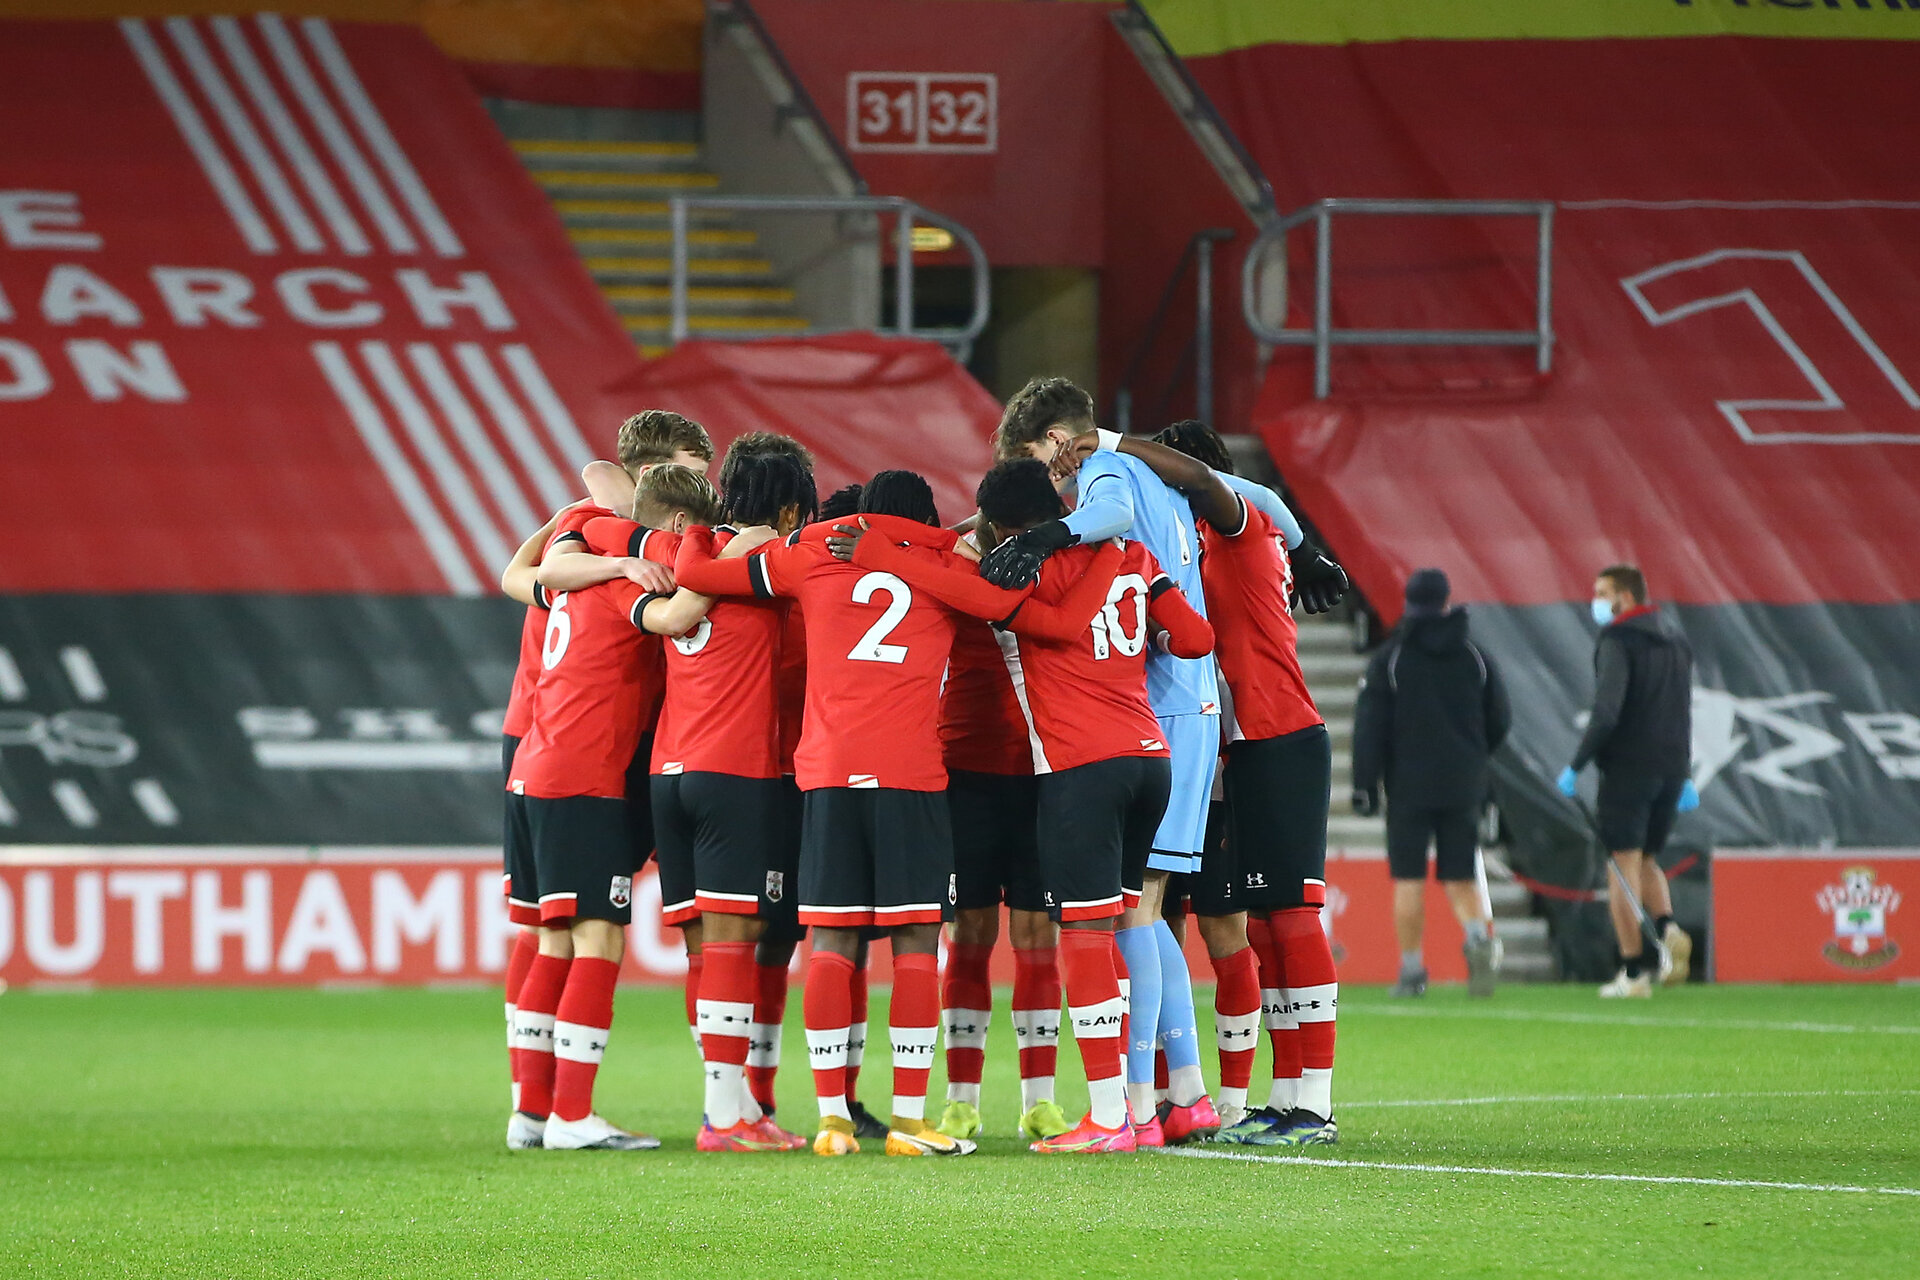 SOUTHAMPTON, ENGLAND - MARCH 23: Southampton players huddle ahead of the FA Youth Cup fourth round match between Southampton and Burton Albion at St Mary's Stadium on March 23, 2021 in Southampton, England. (Photo by Isabelle Field/Southampton FC via Getty Images)